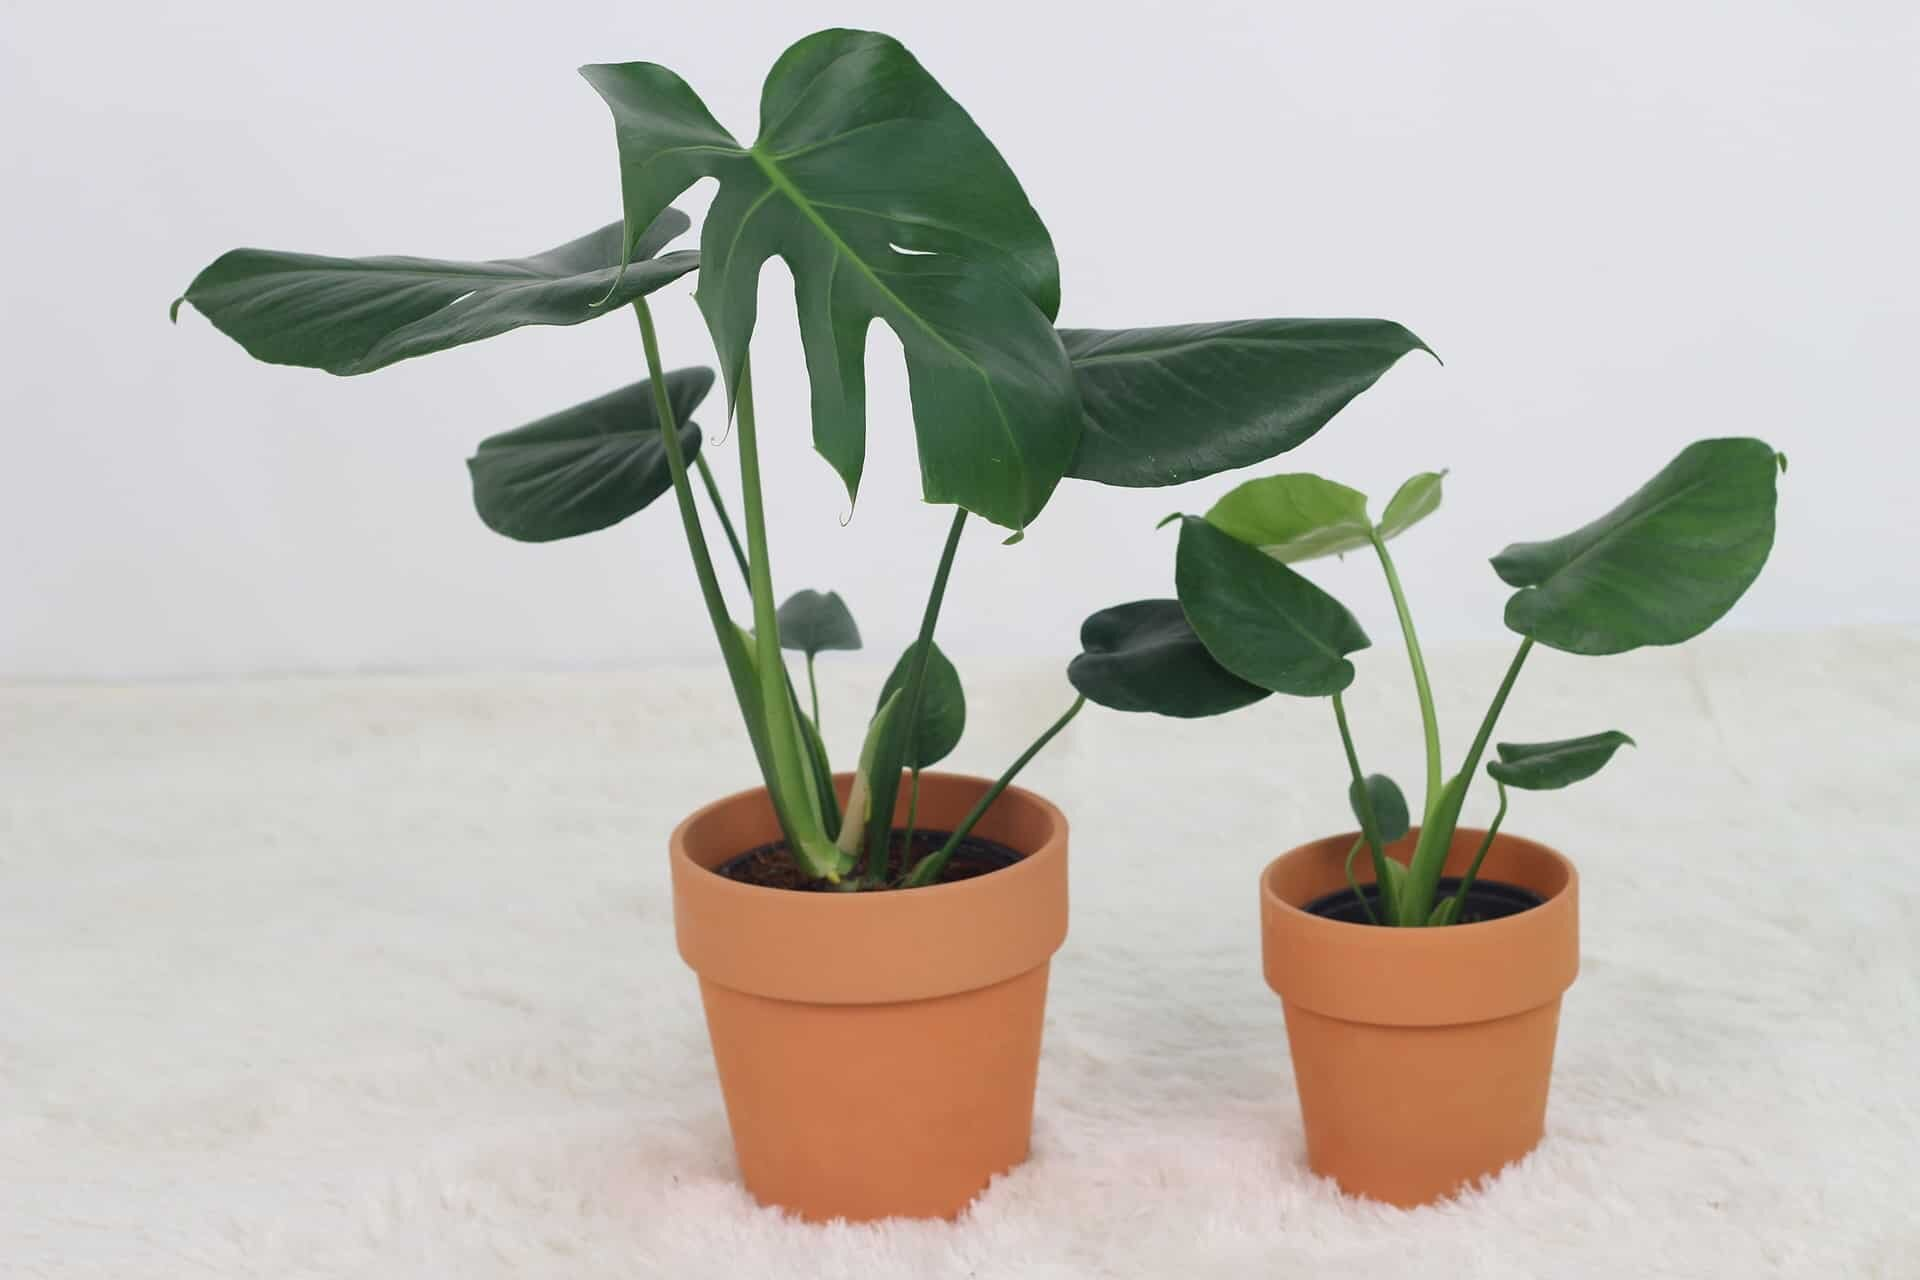 Your Monstera needs more light if it's growing slowly